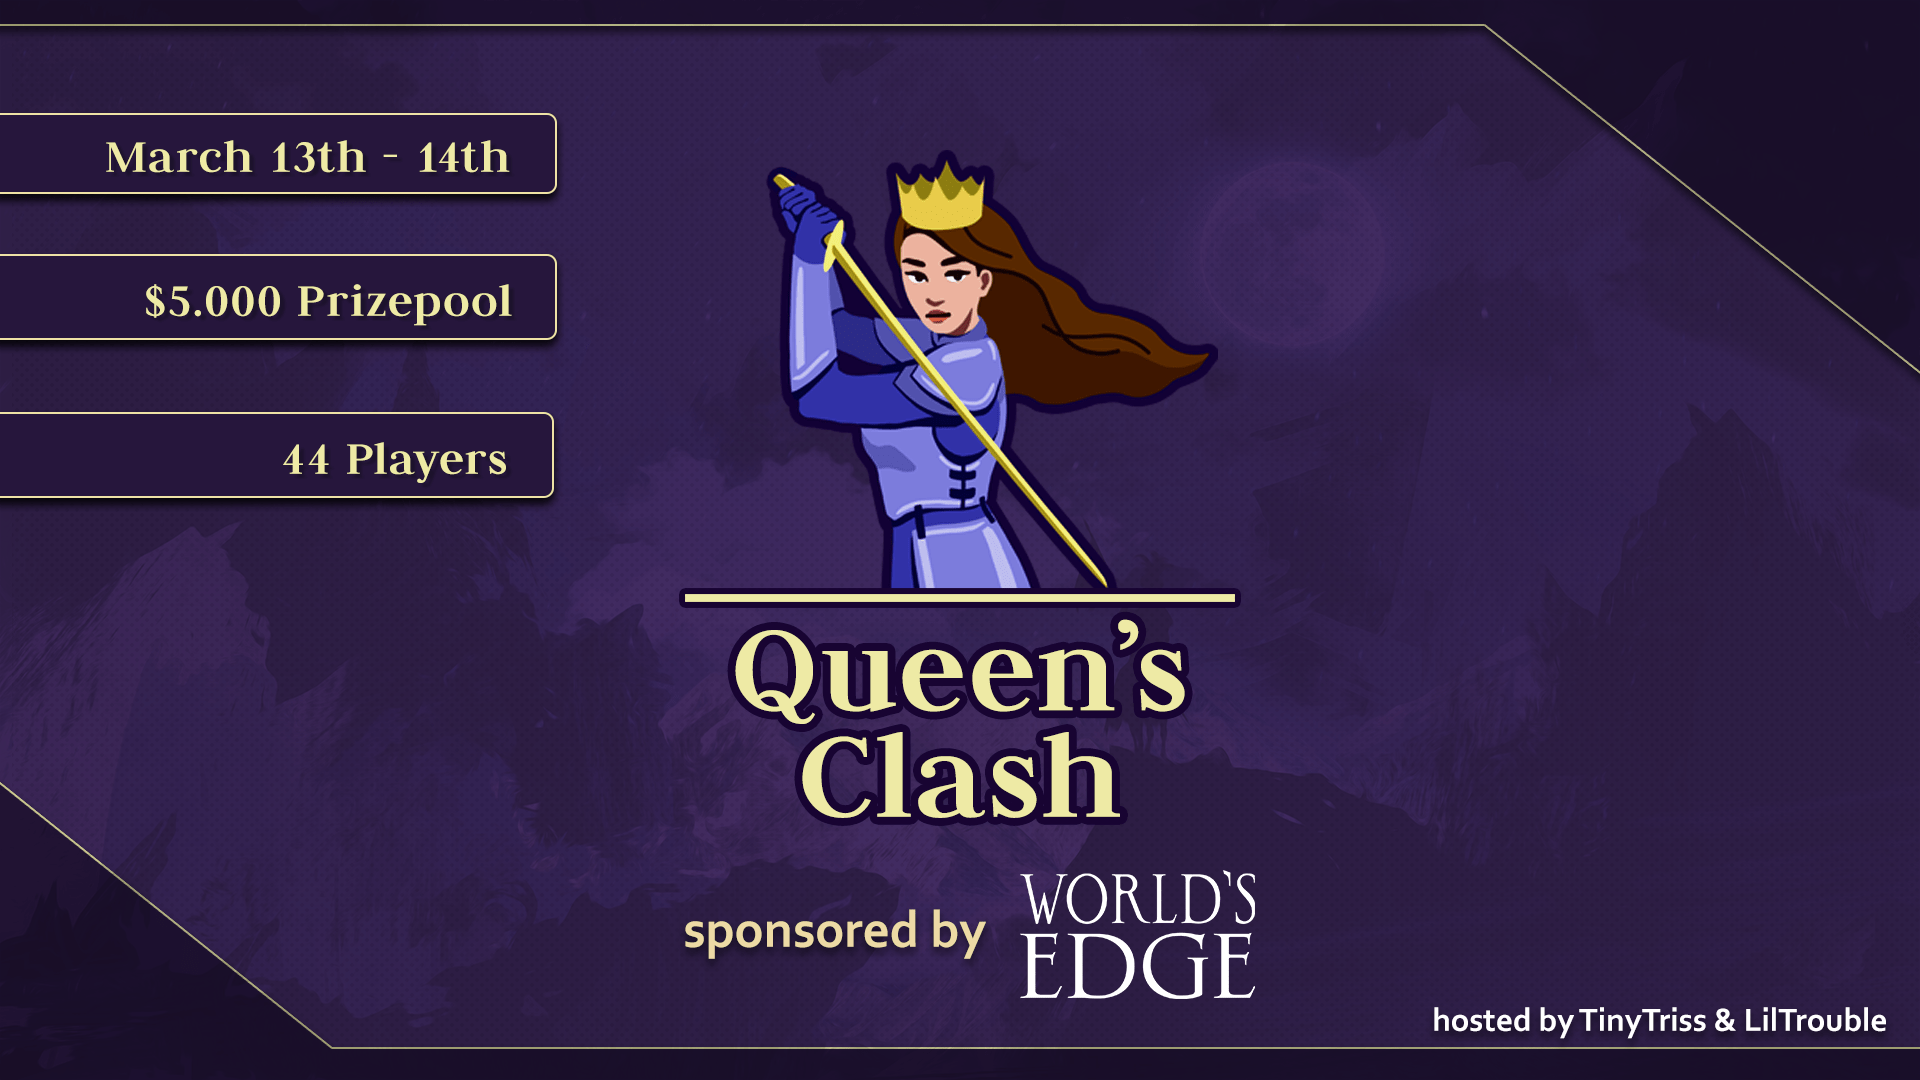 The Queen's Clash Tournament, sponsored by World's Edge